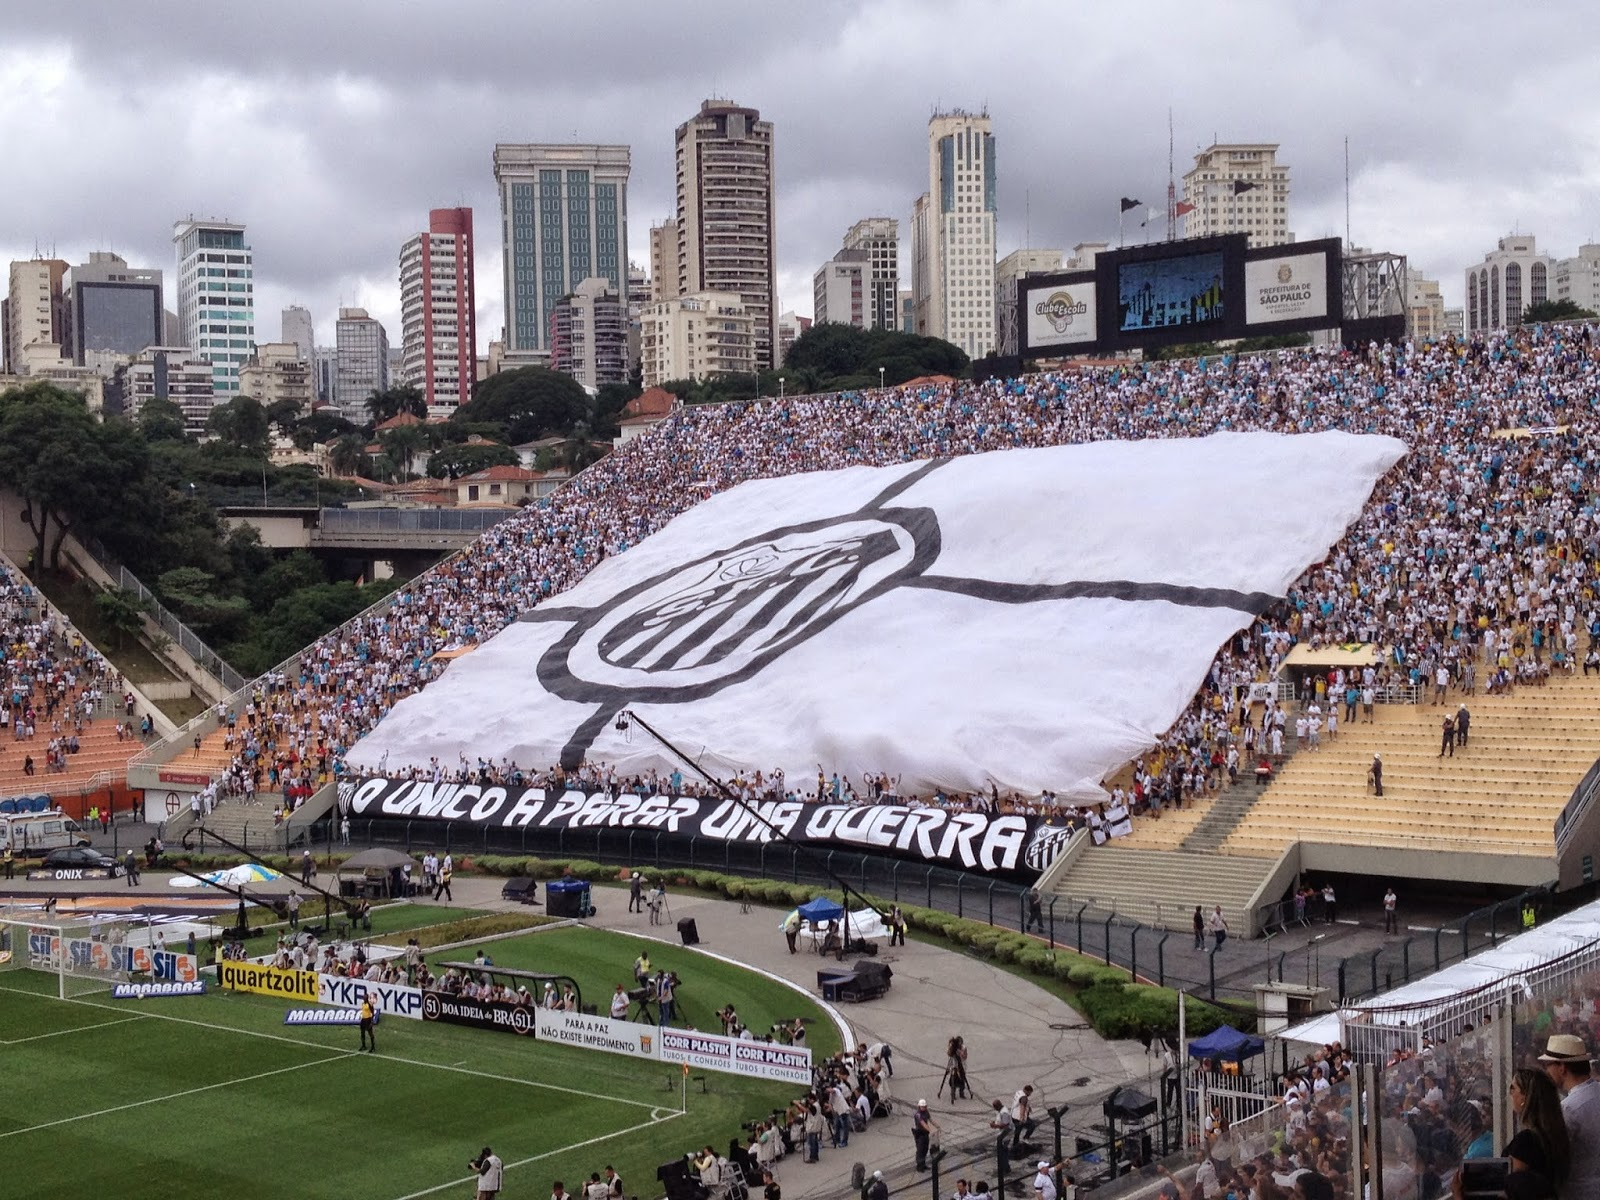 Torcida do Santos no Pacaembu na final contra o Ituano